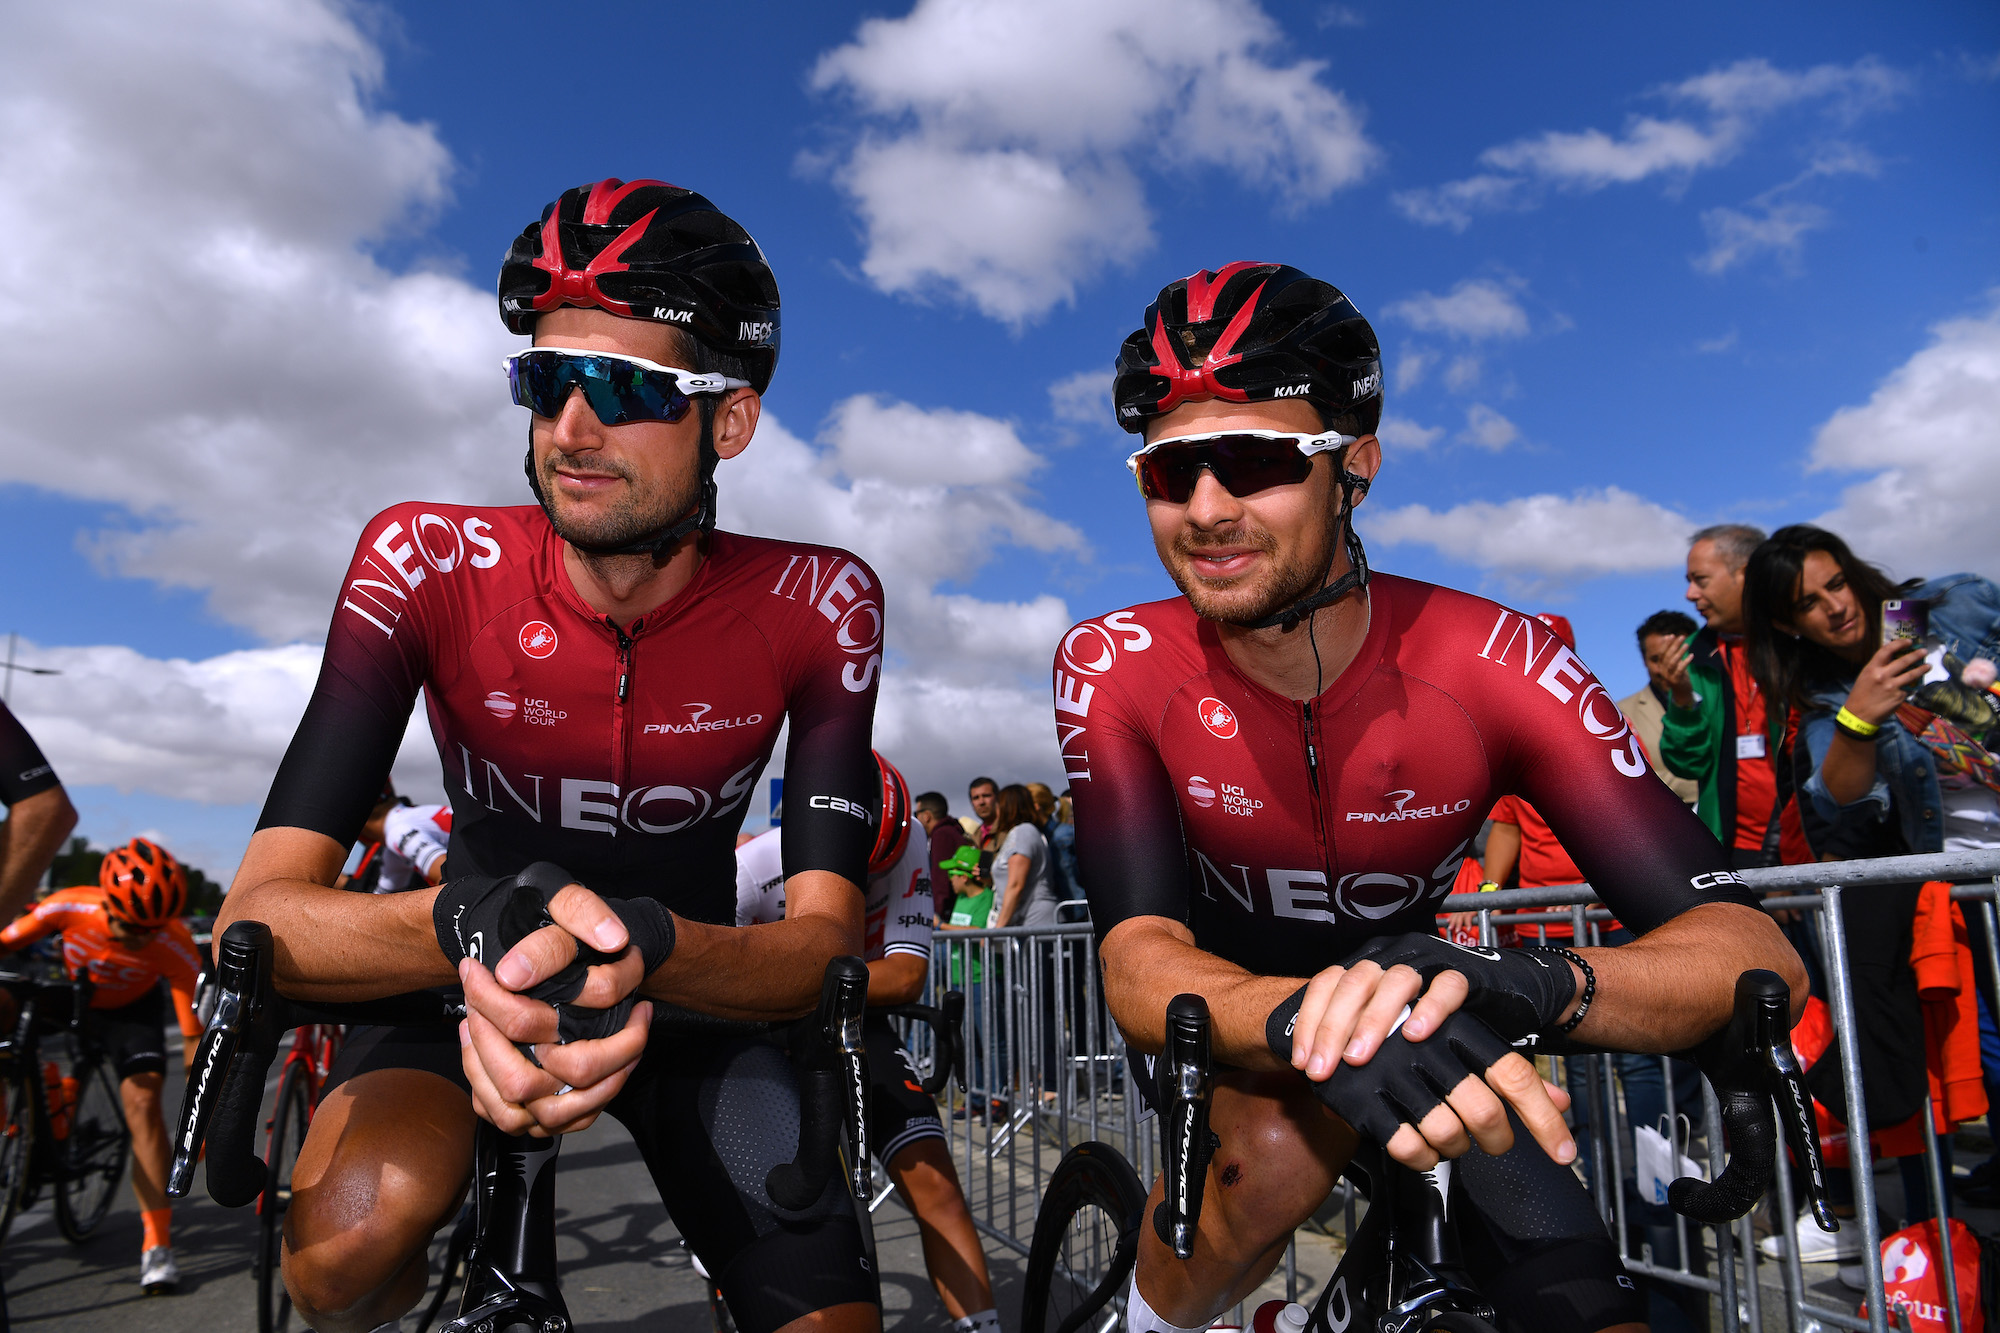 Brexit with Wout Poels and early nights with Ian Stannard: The story of Owain Doull's first Grand Tour